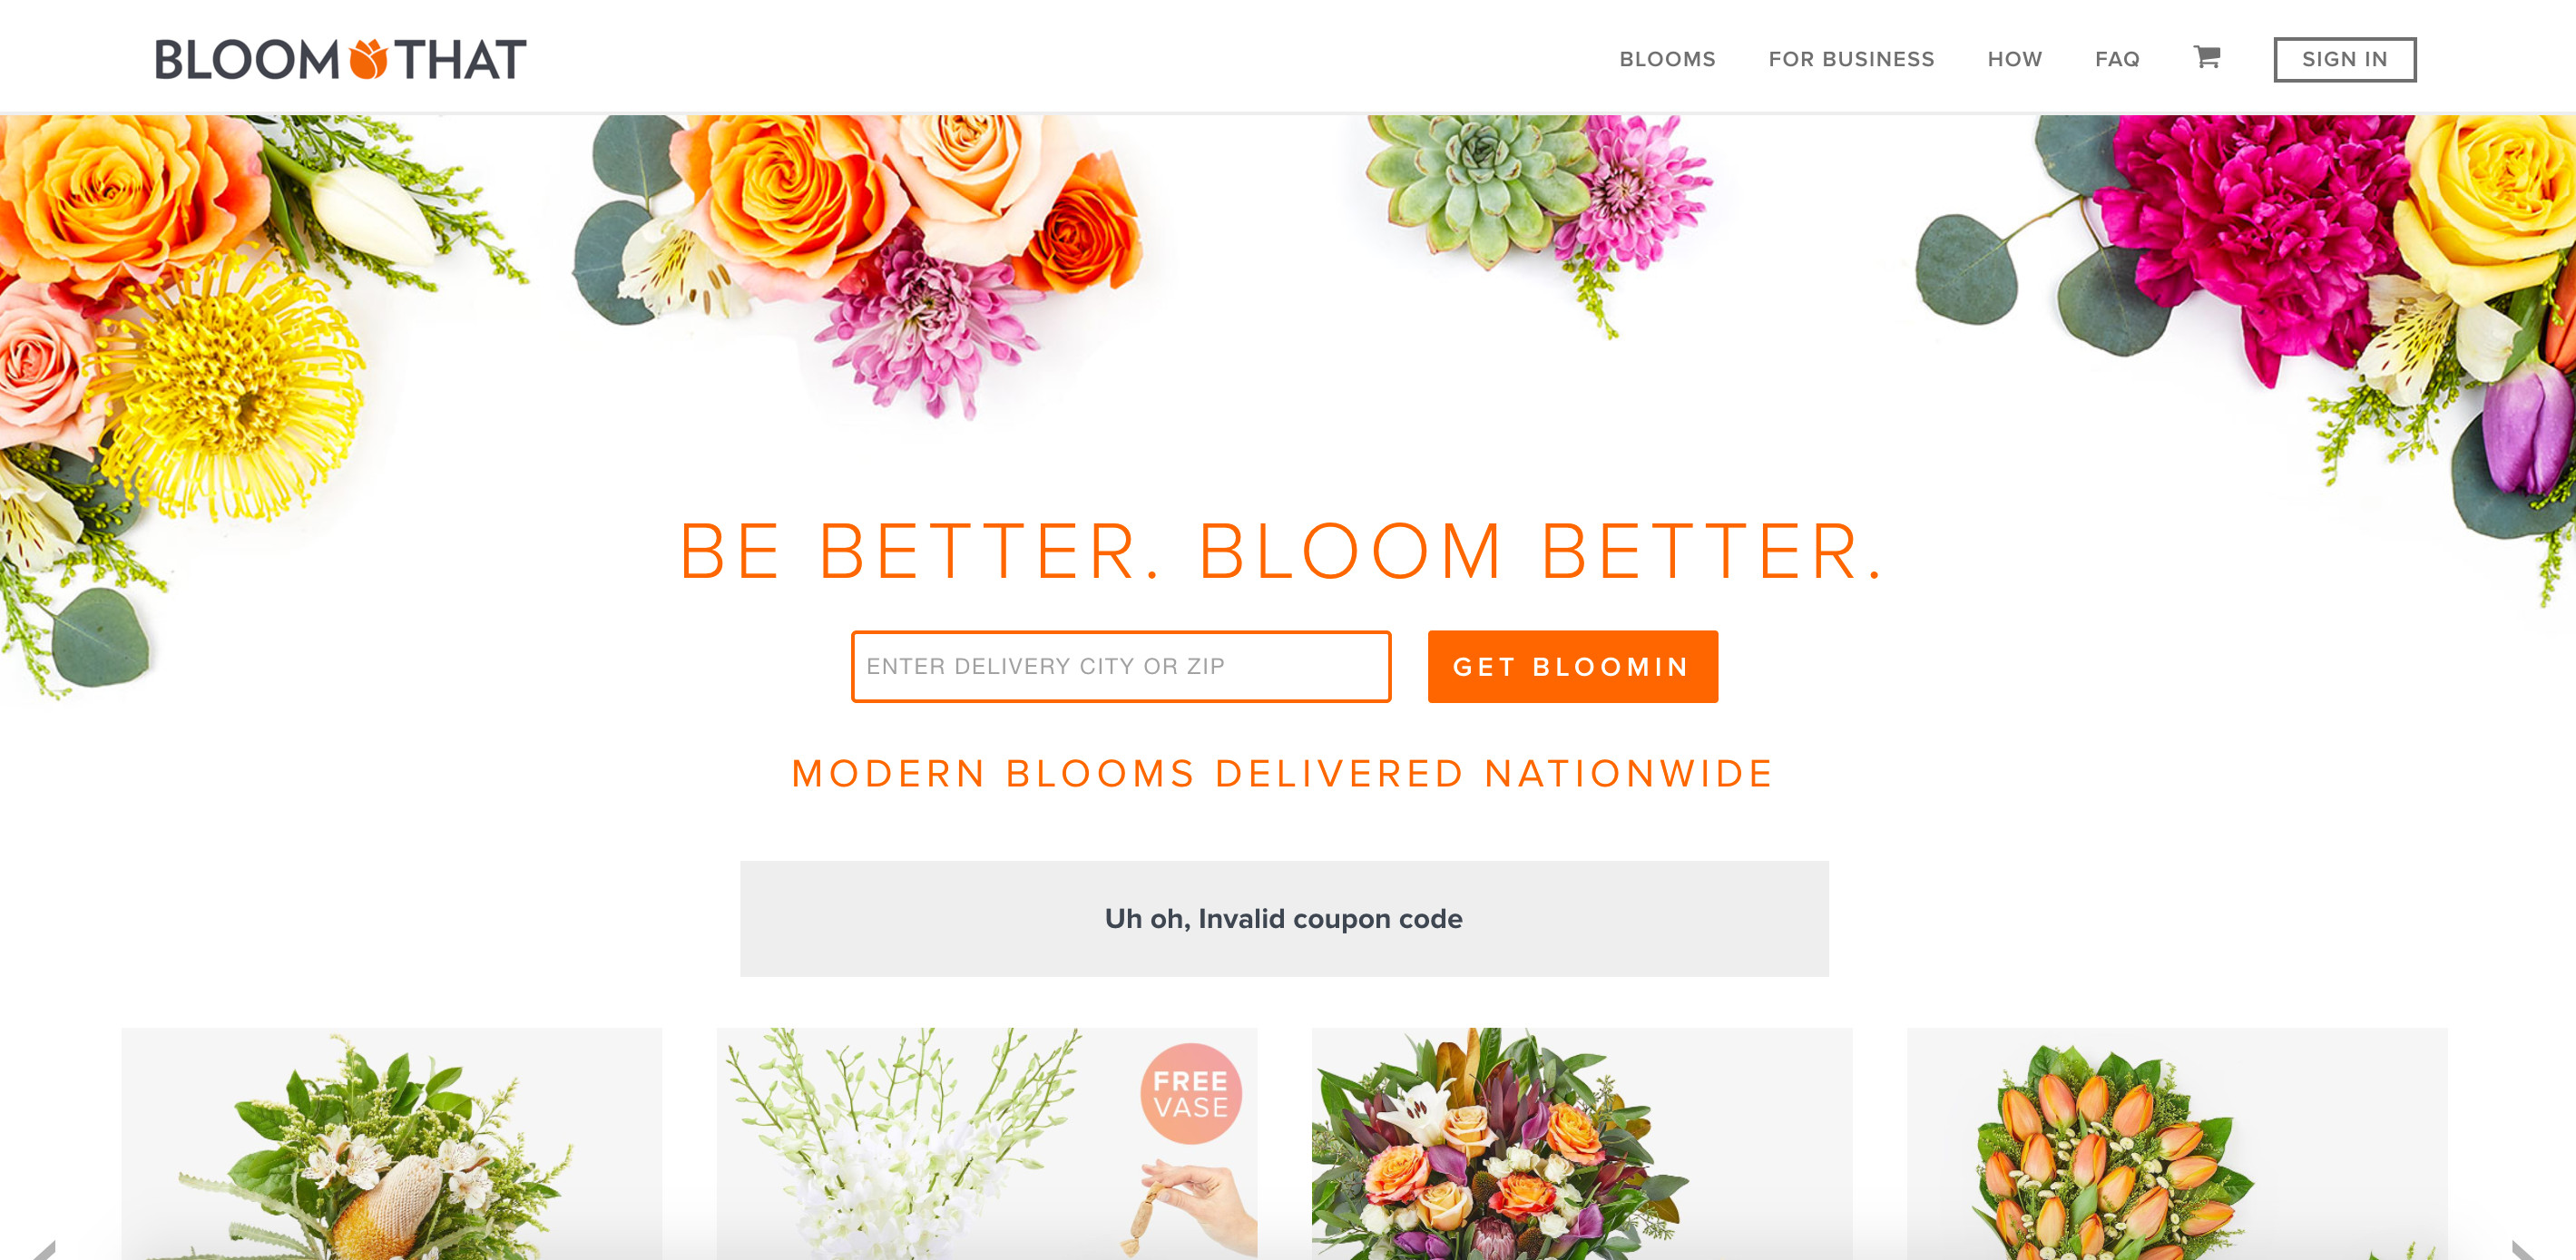 BloomThat Flower Delivery